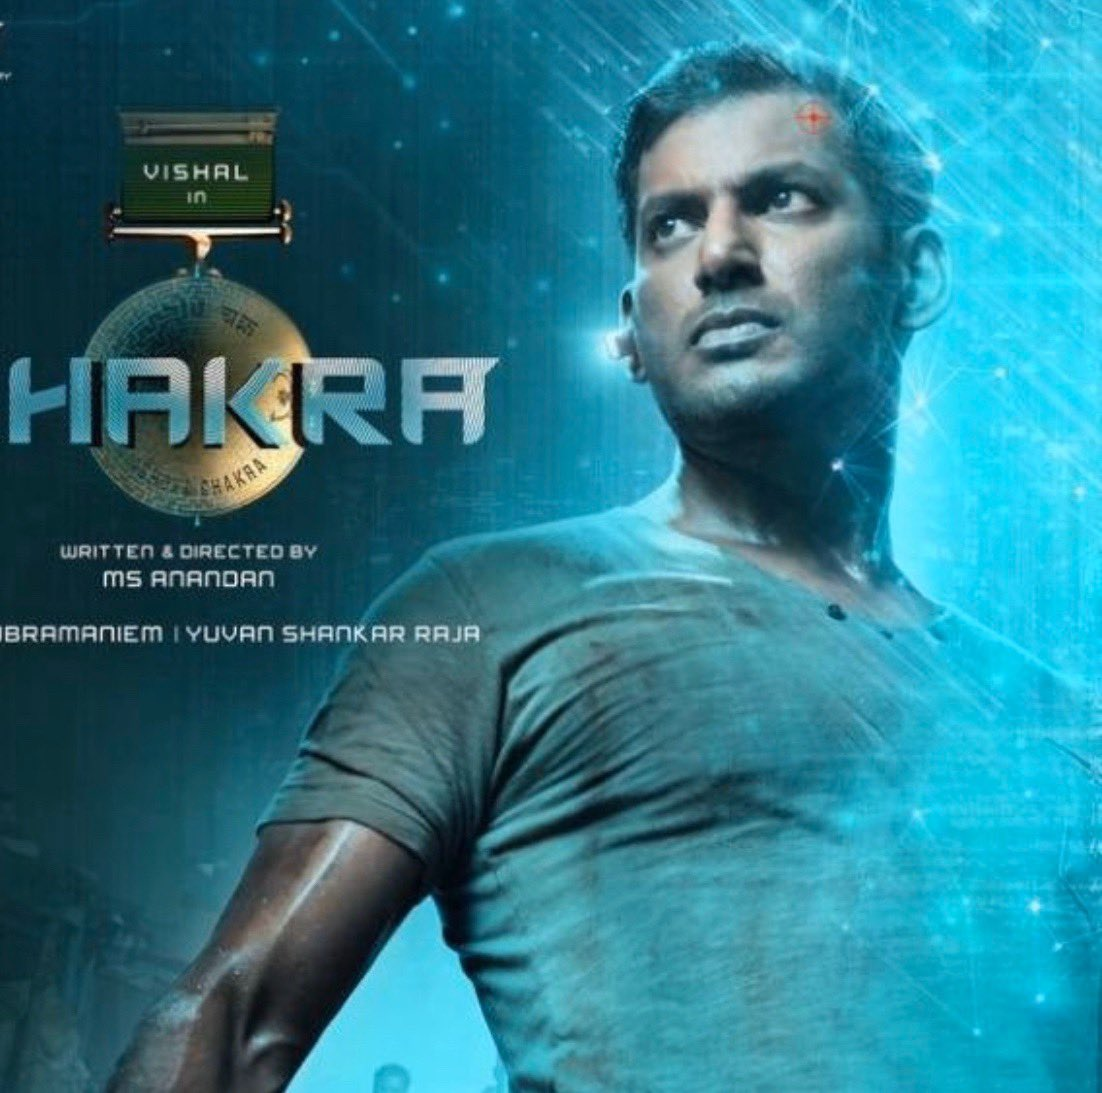 After trending glimpse @VishalKOfficial 's sensational #ChakraTeaser will be out this Saturday and it will be released by 4 celebrities from 4 different languages   @ReginaCassandra @ShraddhaSrinath @thisisysr @manobalam @srushtiDange @iamrobosankar @AnandanMS15  @johnsoncinepro https://t.co/MF1aZij5Tx